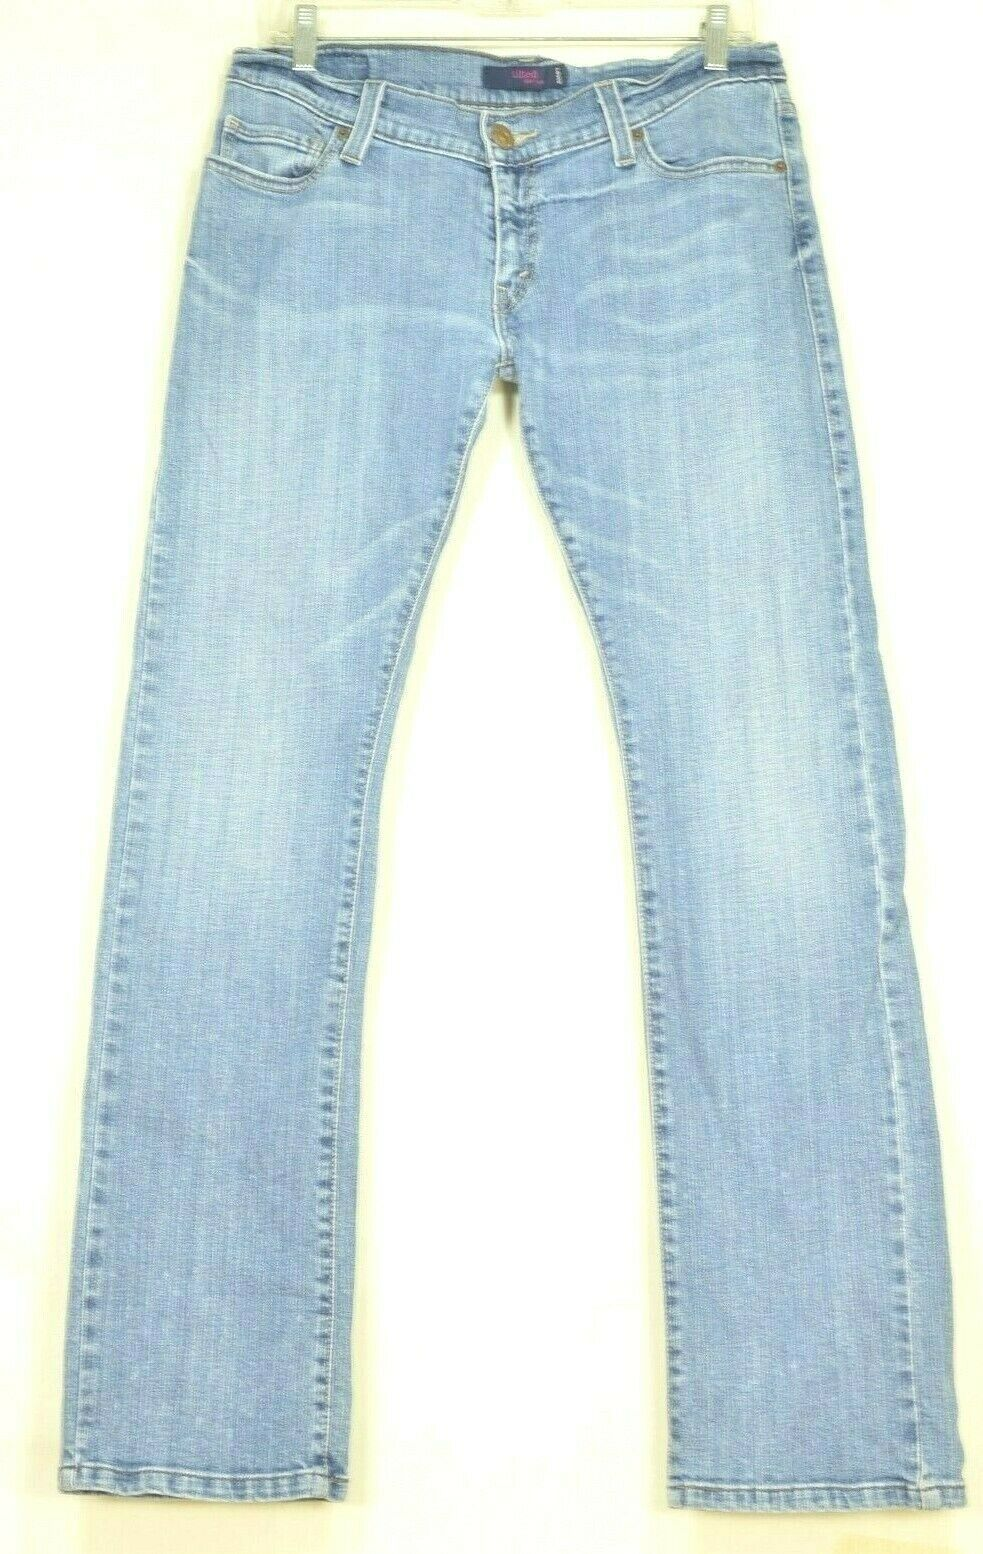 Primary image for Levi 504 jeans 9 x 32 tilted slouch straight leg stretch